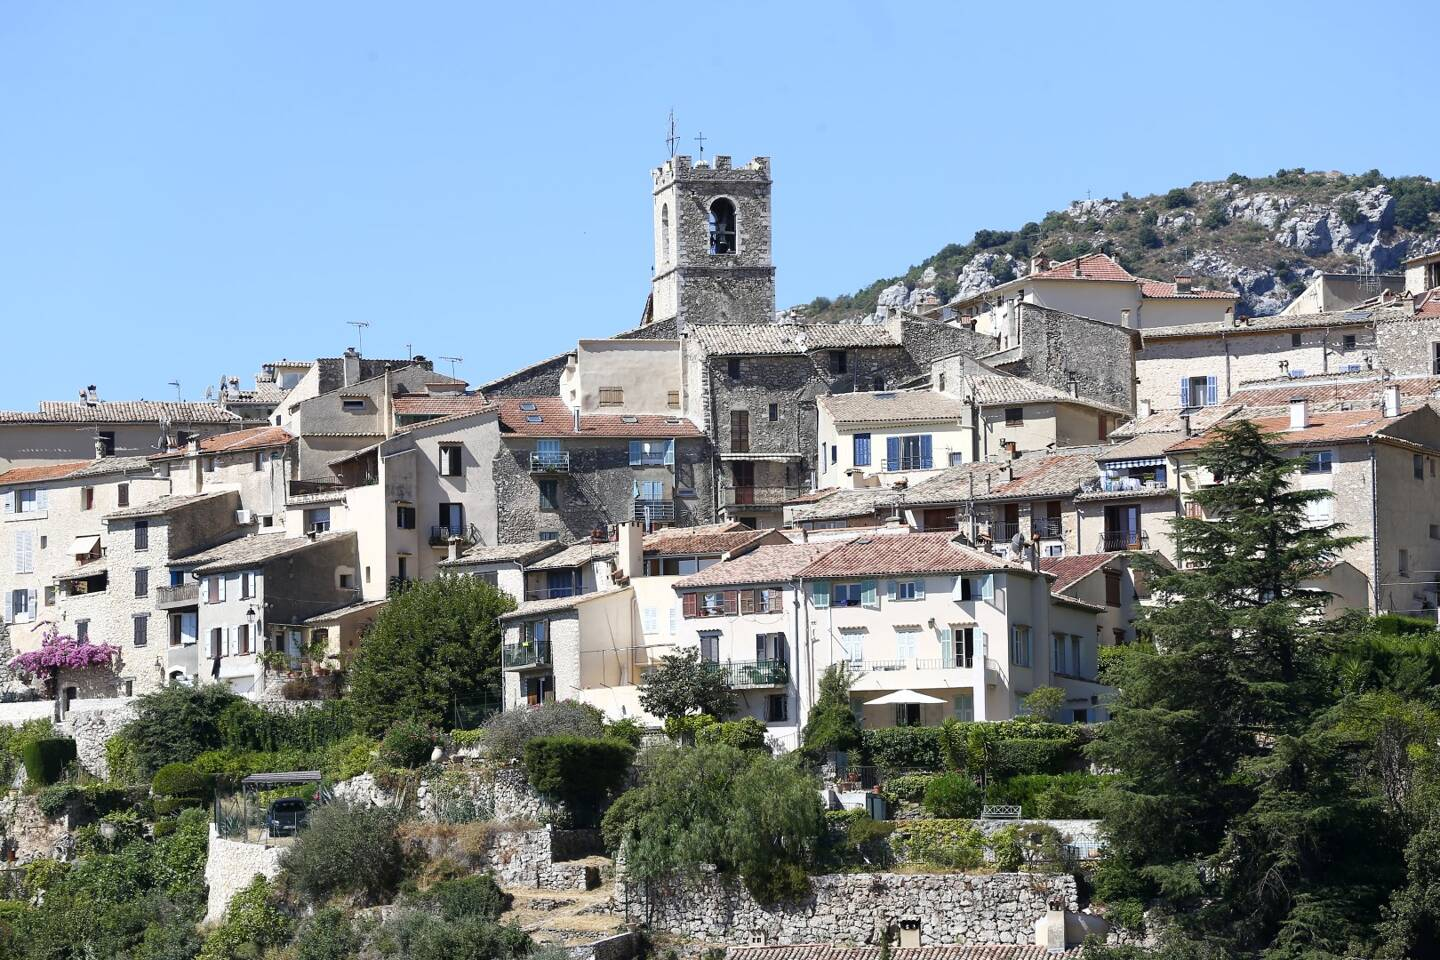 Le village de Saint-Jeannet (Photo S.B.)